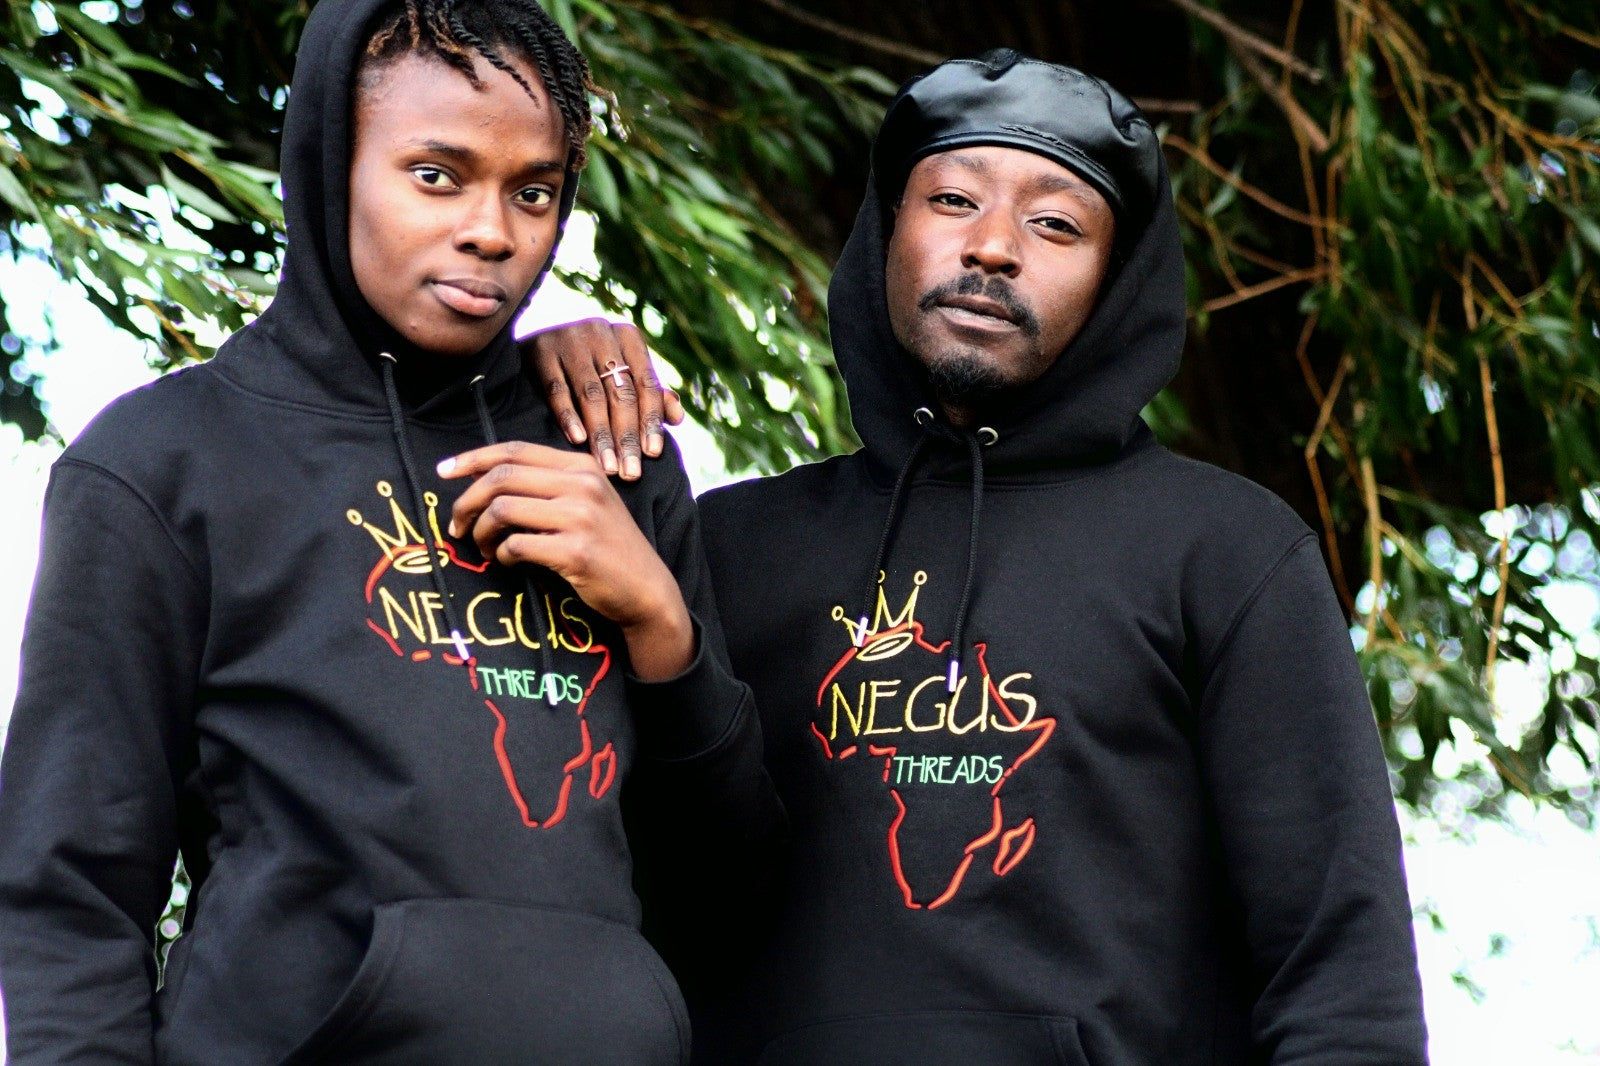 Negus Threads Original Hoodie in Black